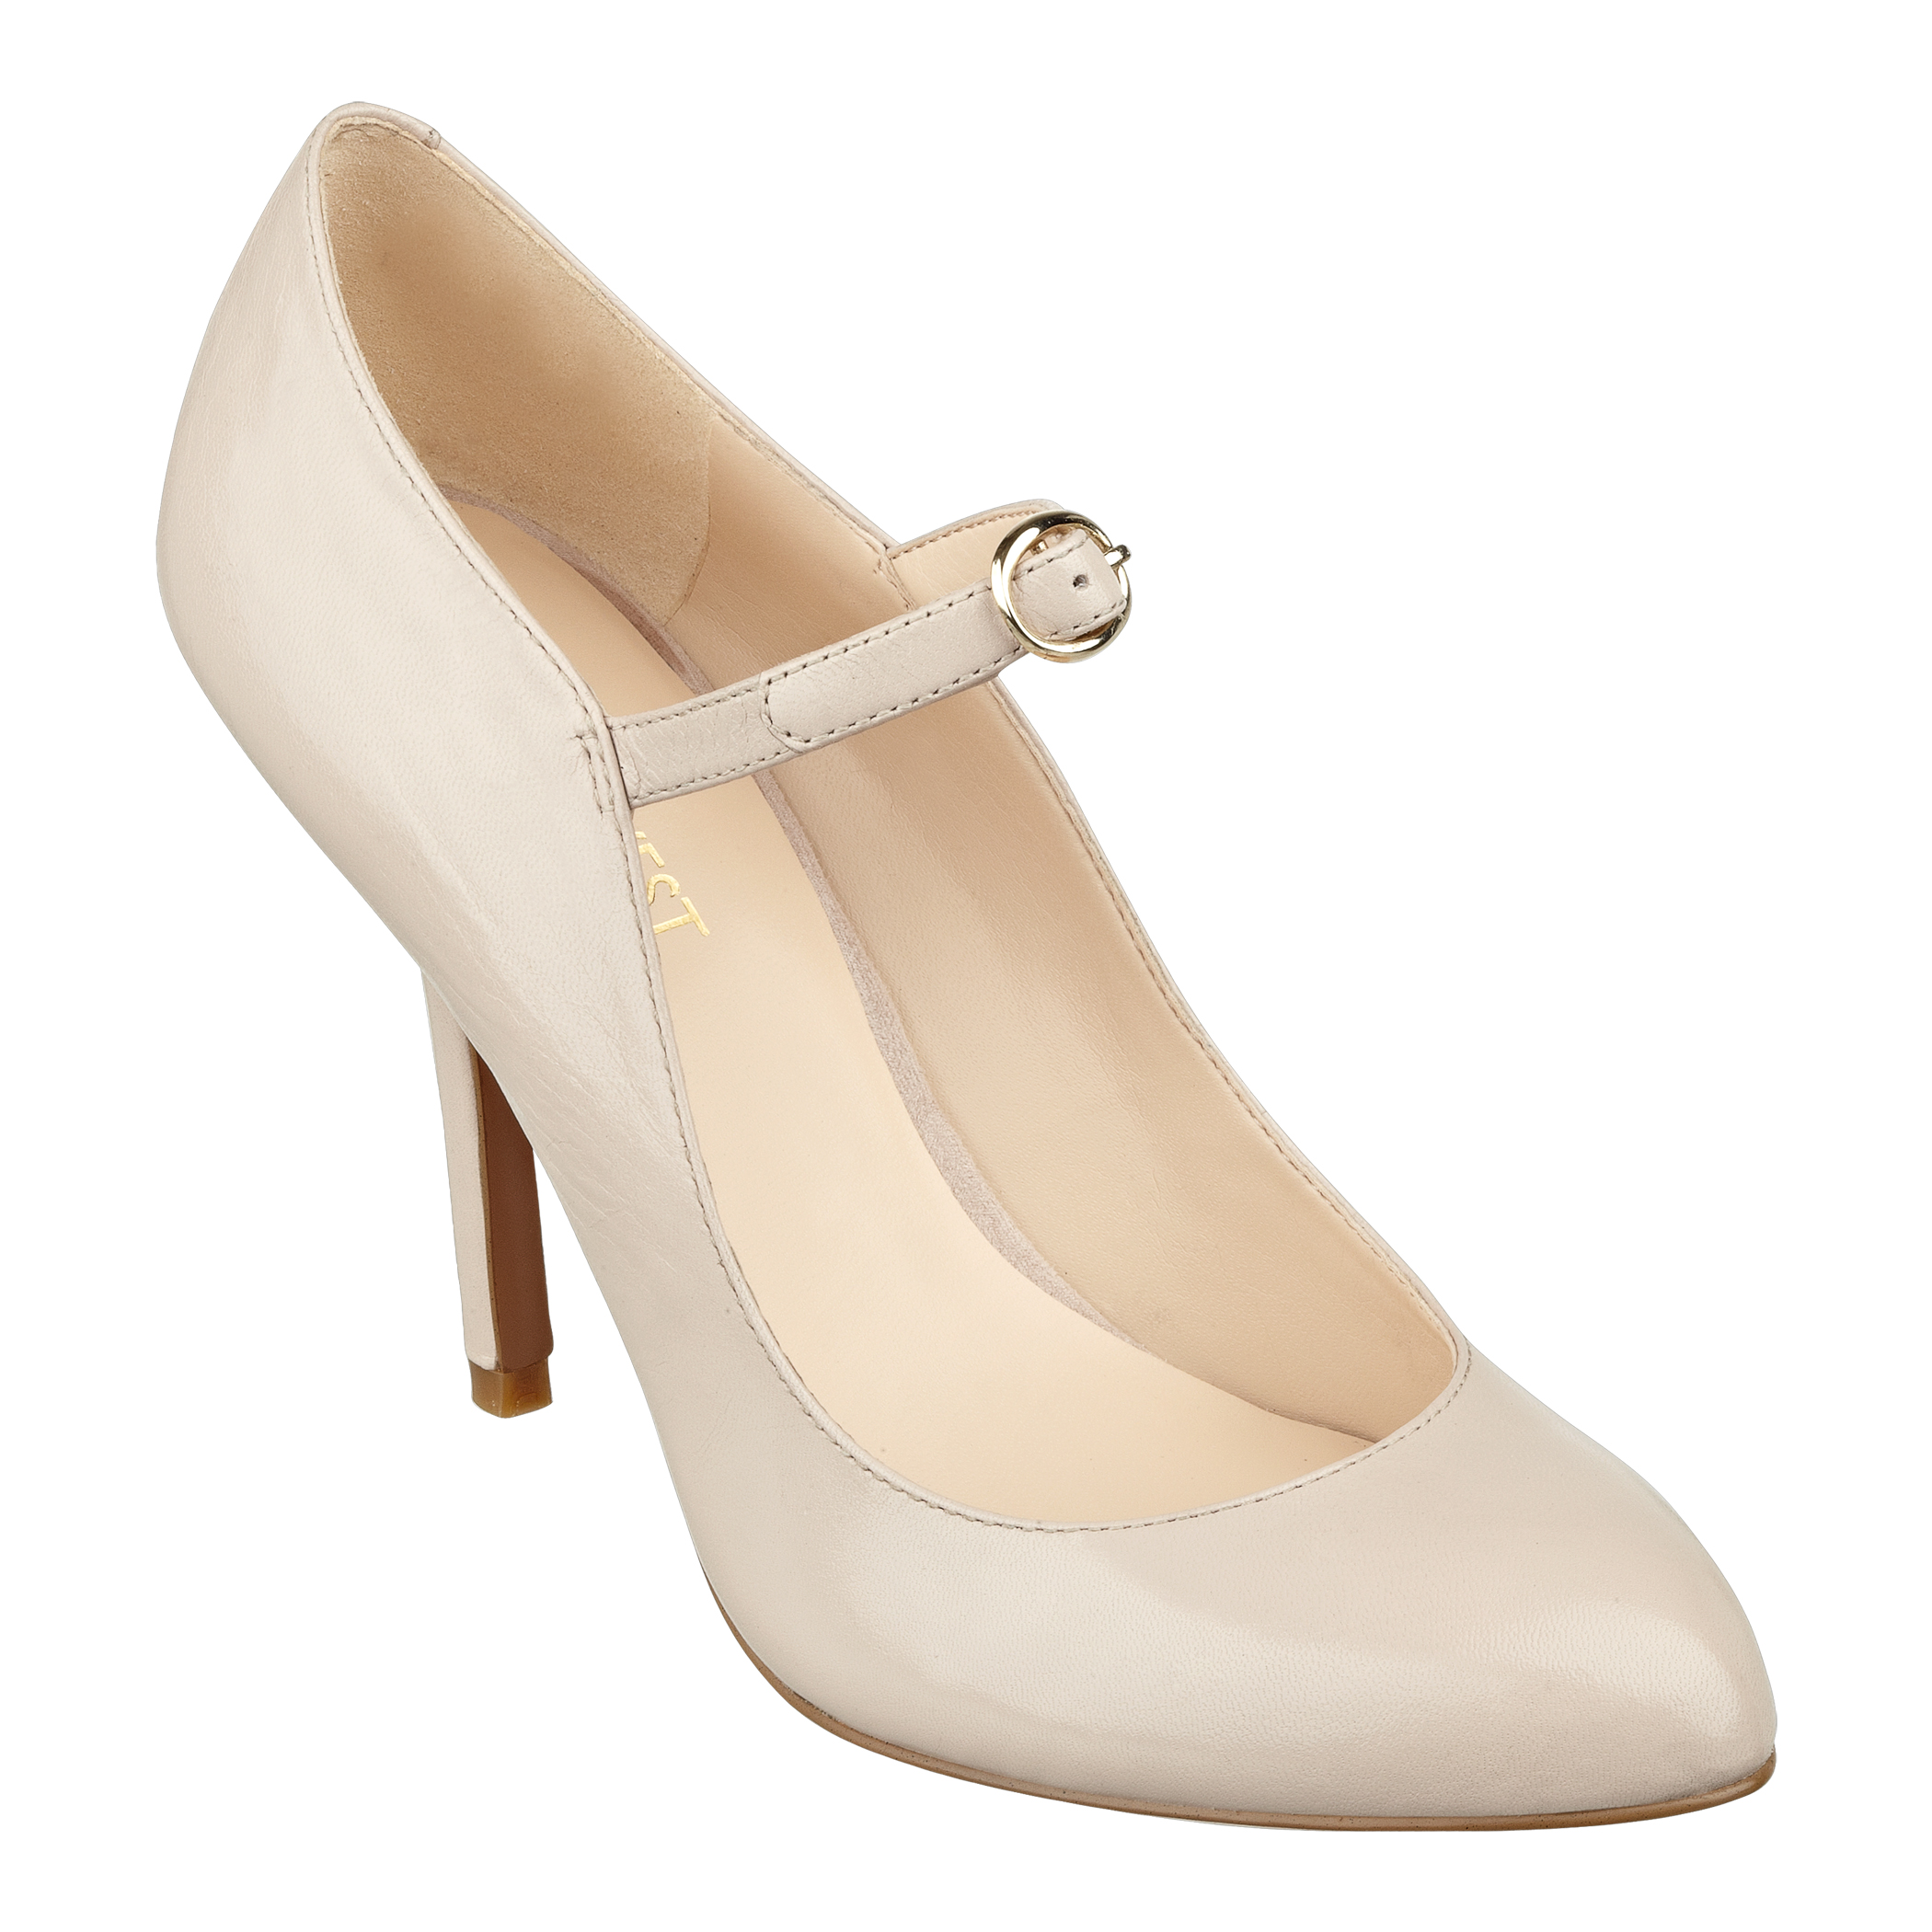 Latest Fashion of Stiletto & Heels Collection for women by Nine West (17)